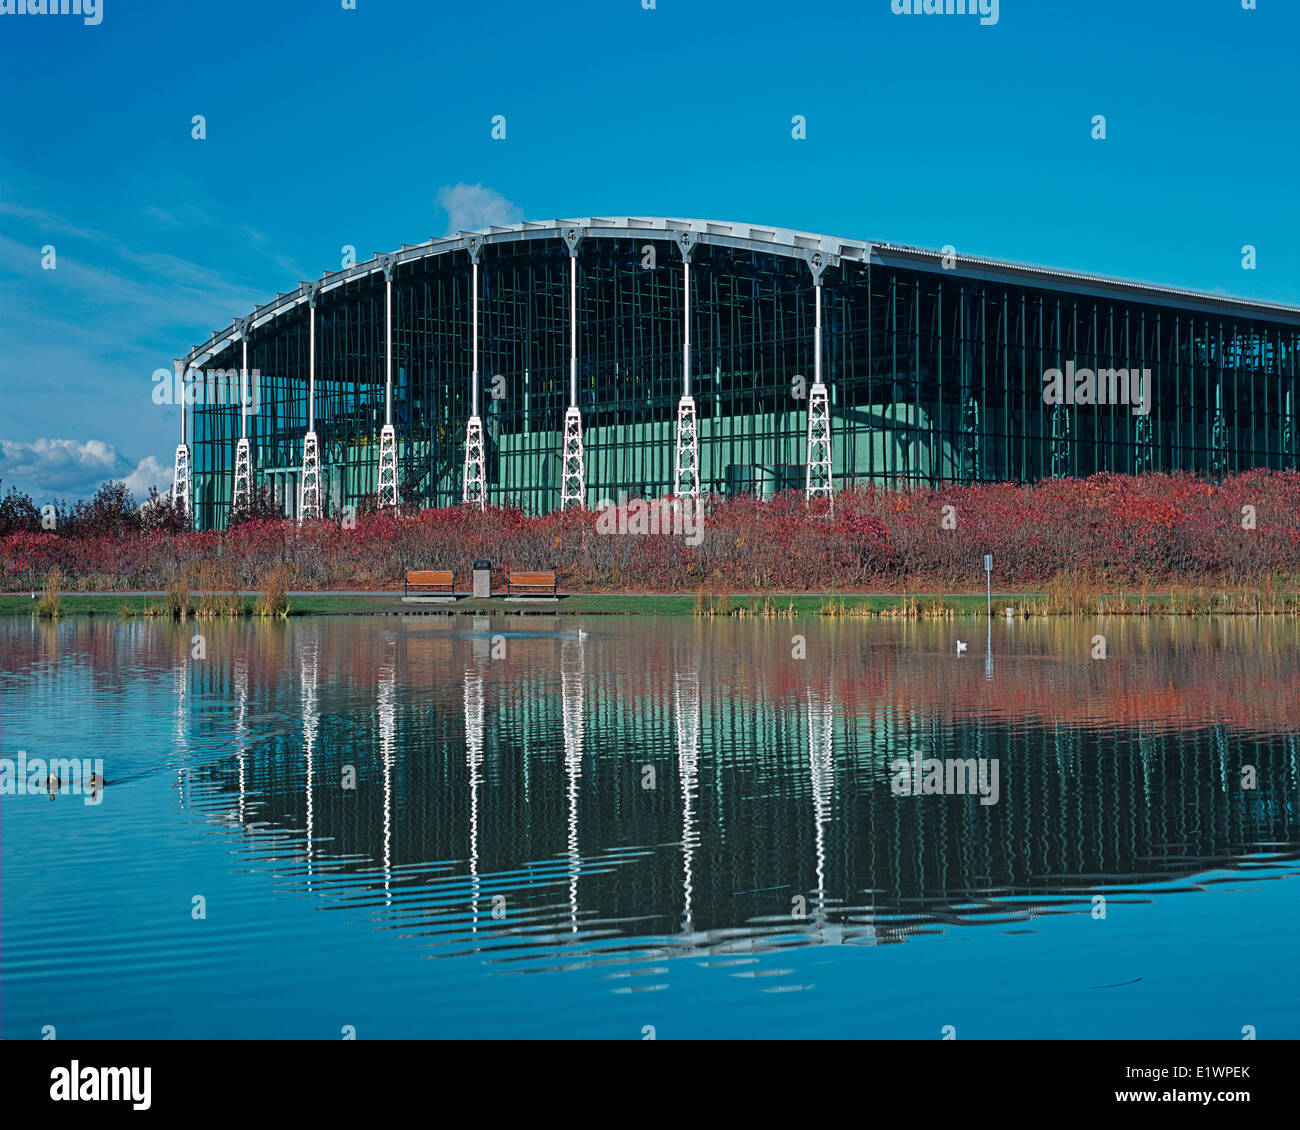 Archives Stock Photos & Archives Stock Images - Alamy